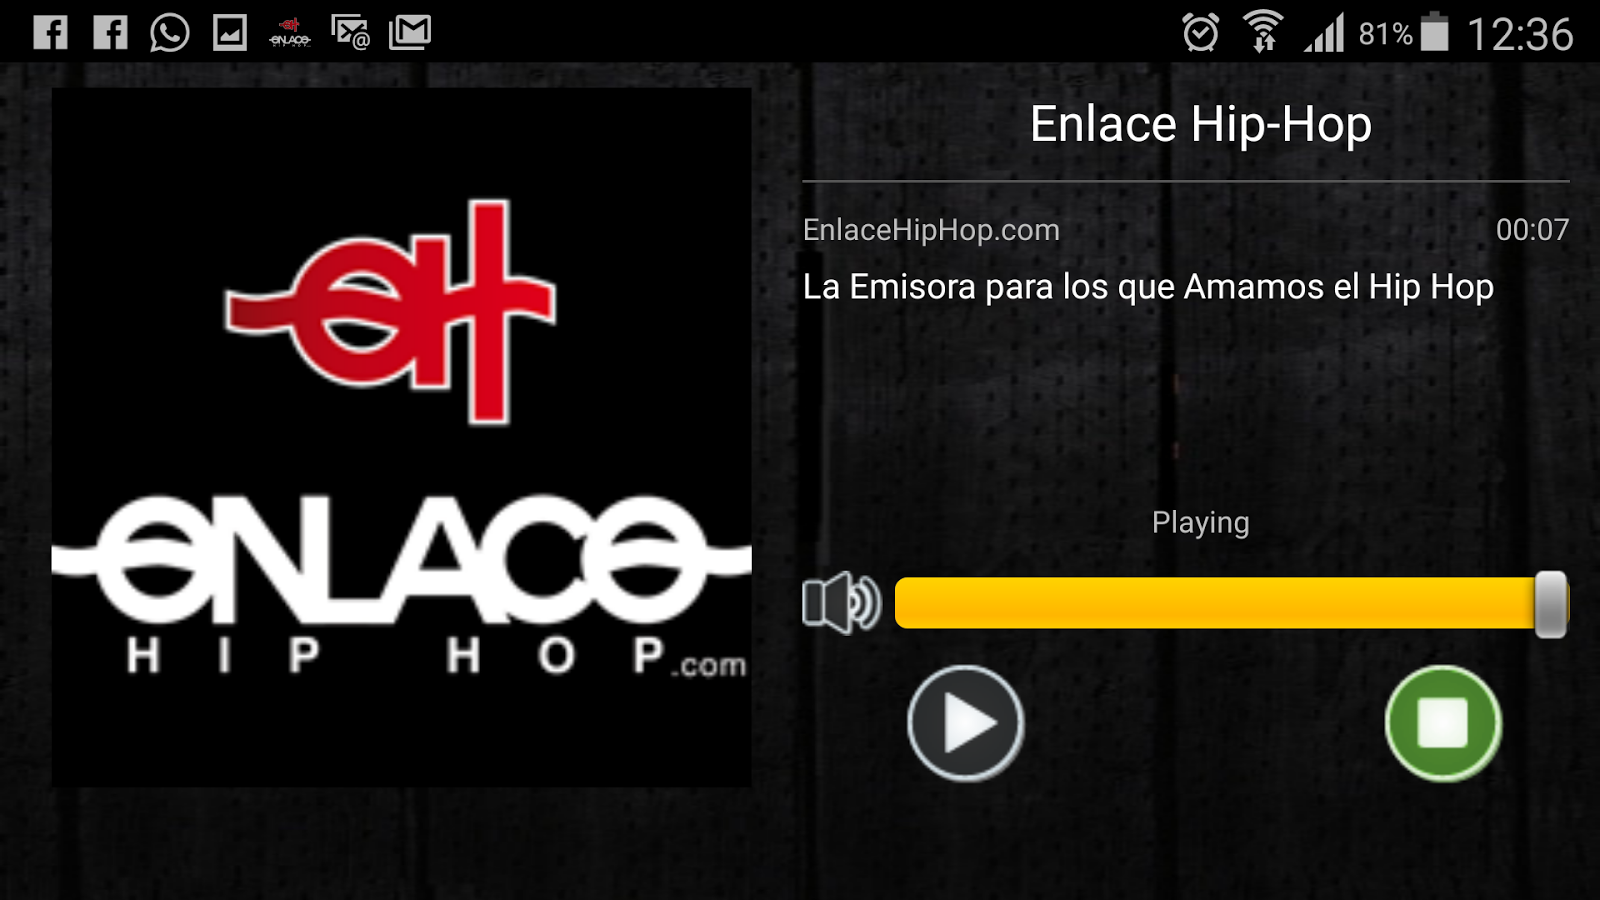 Enlace Hip Hop: captura de pantalla